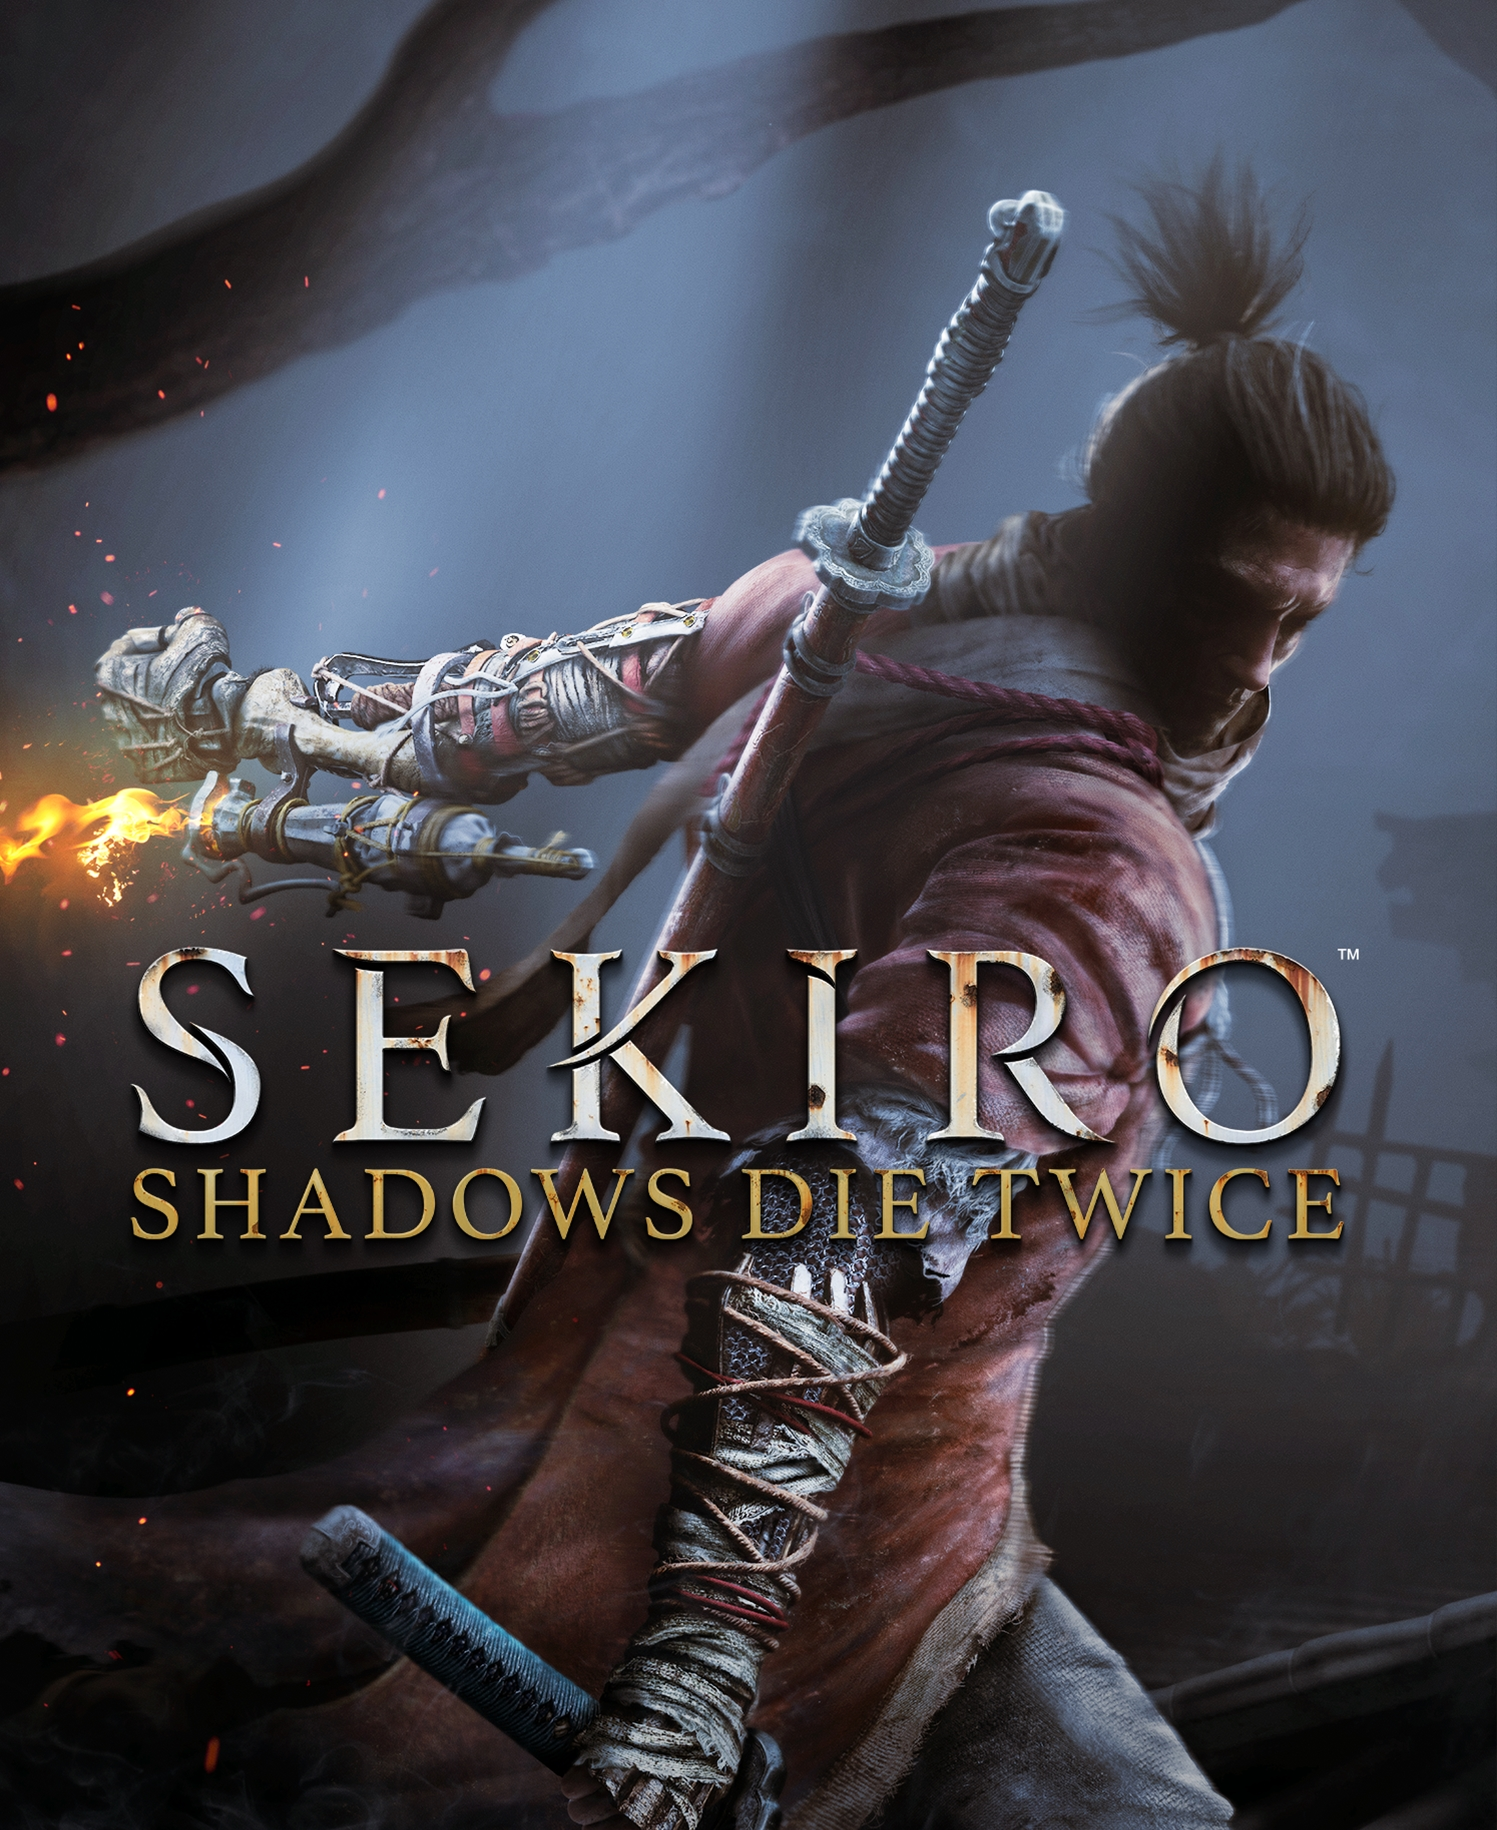 Sekiro: Shadows Die Twice hands-on preview and interview – 'We share that ninja fantasy'